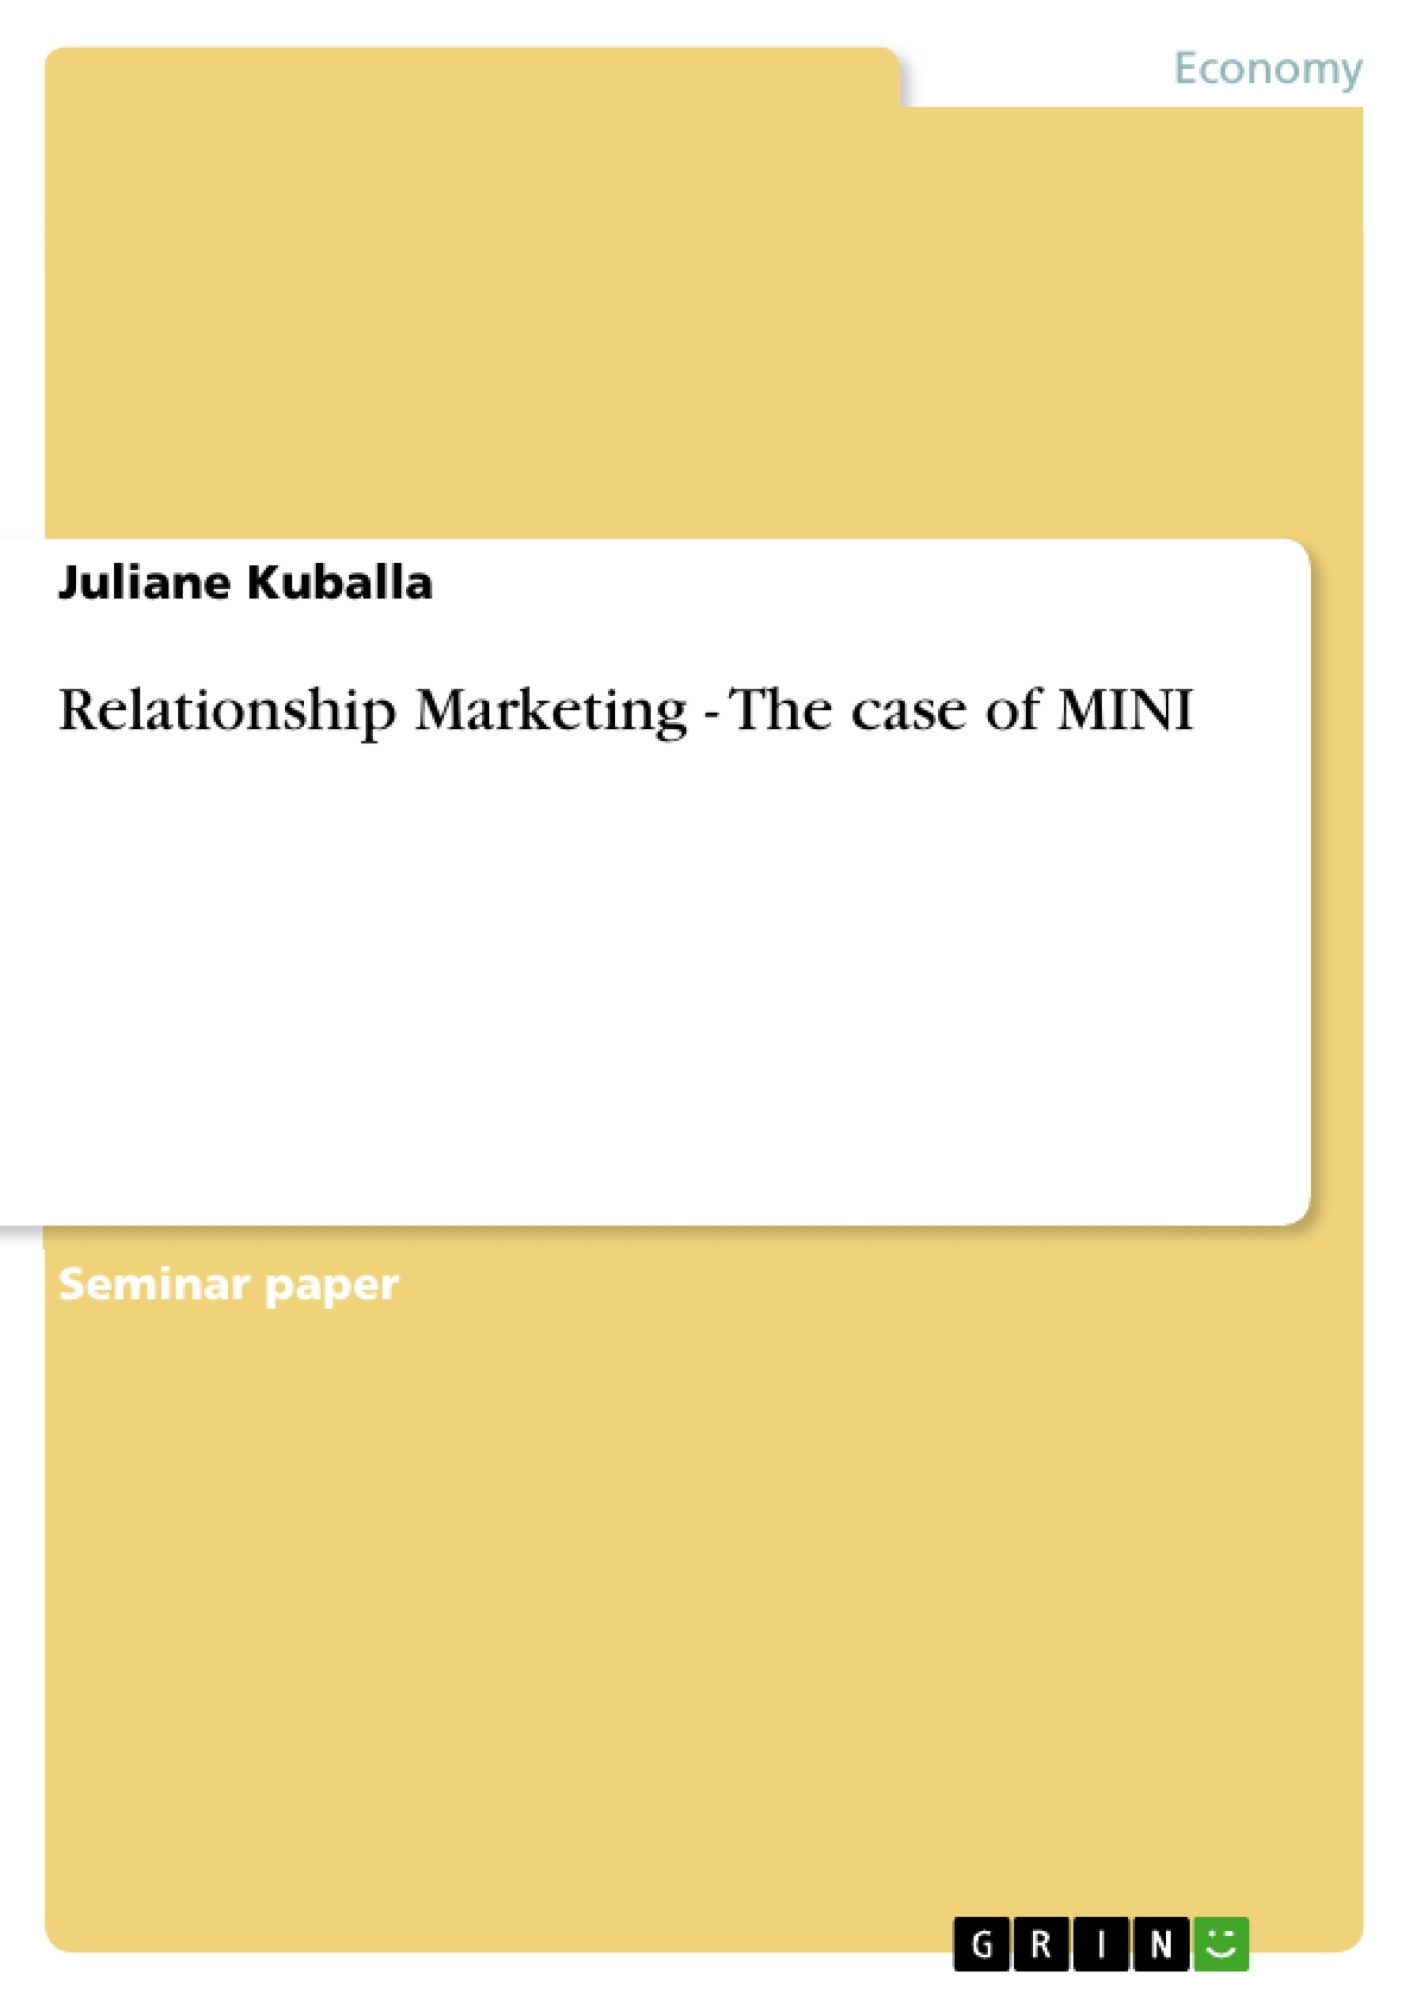 Title: Relationship Marketing - The case of MINI